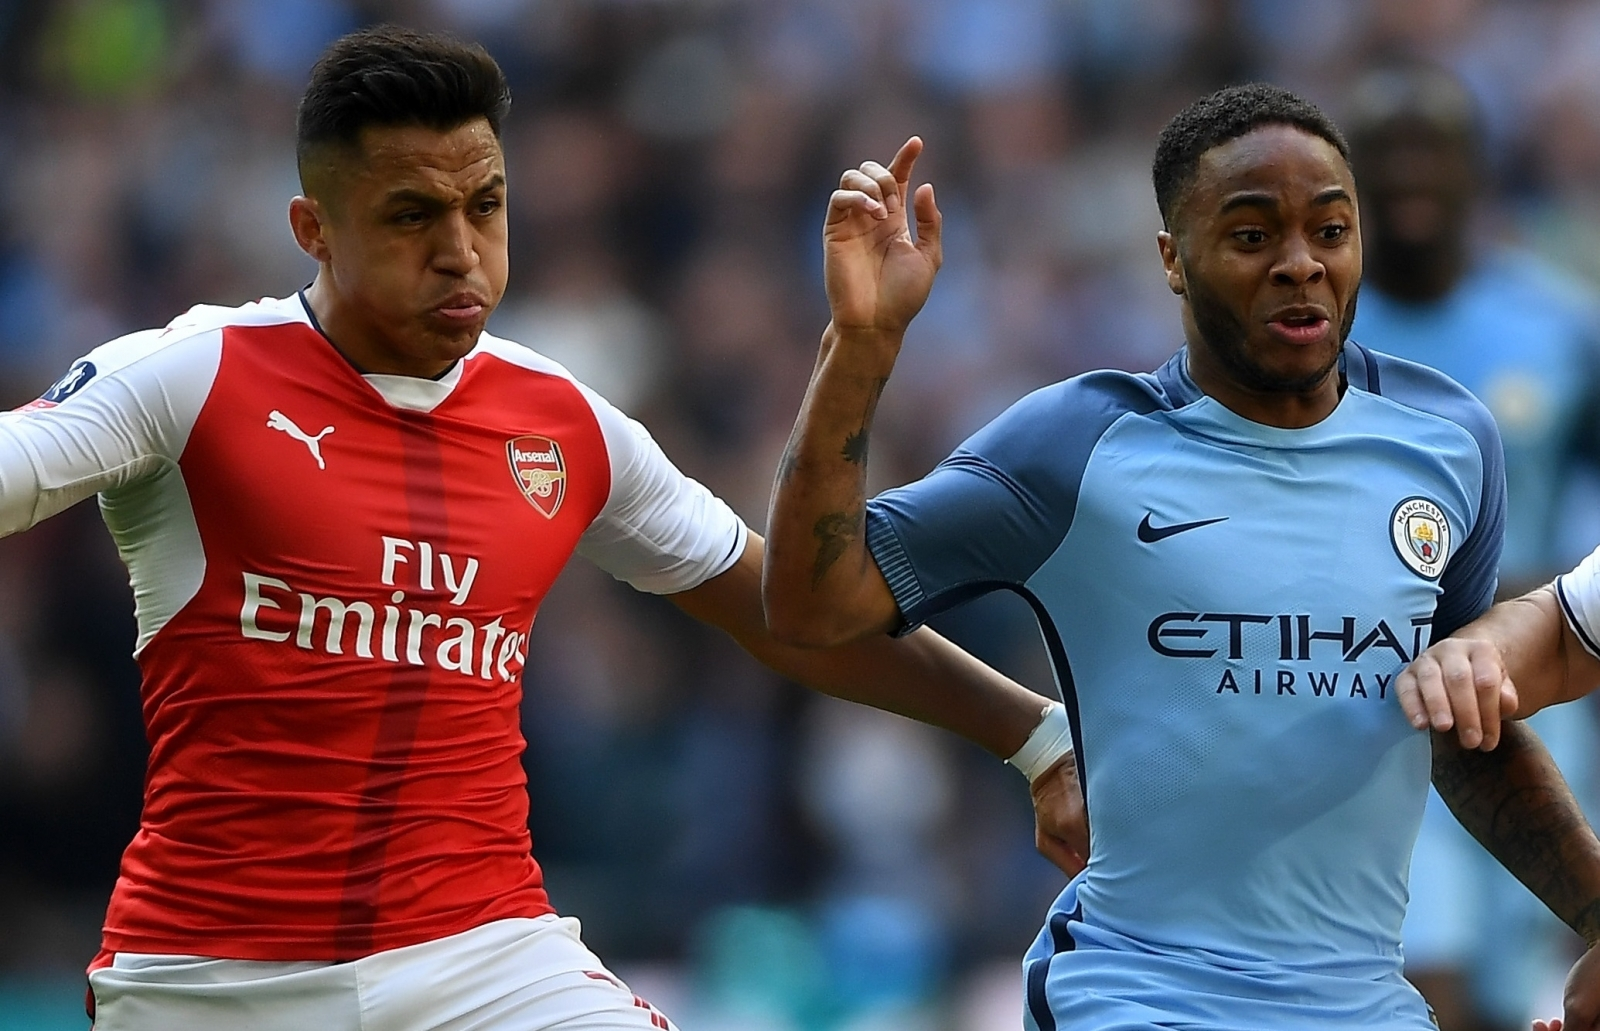 Raheem Sterling and Alexis Sanchez